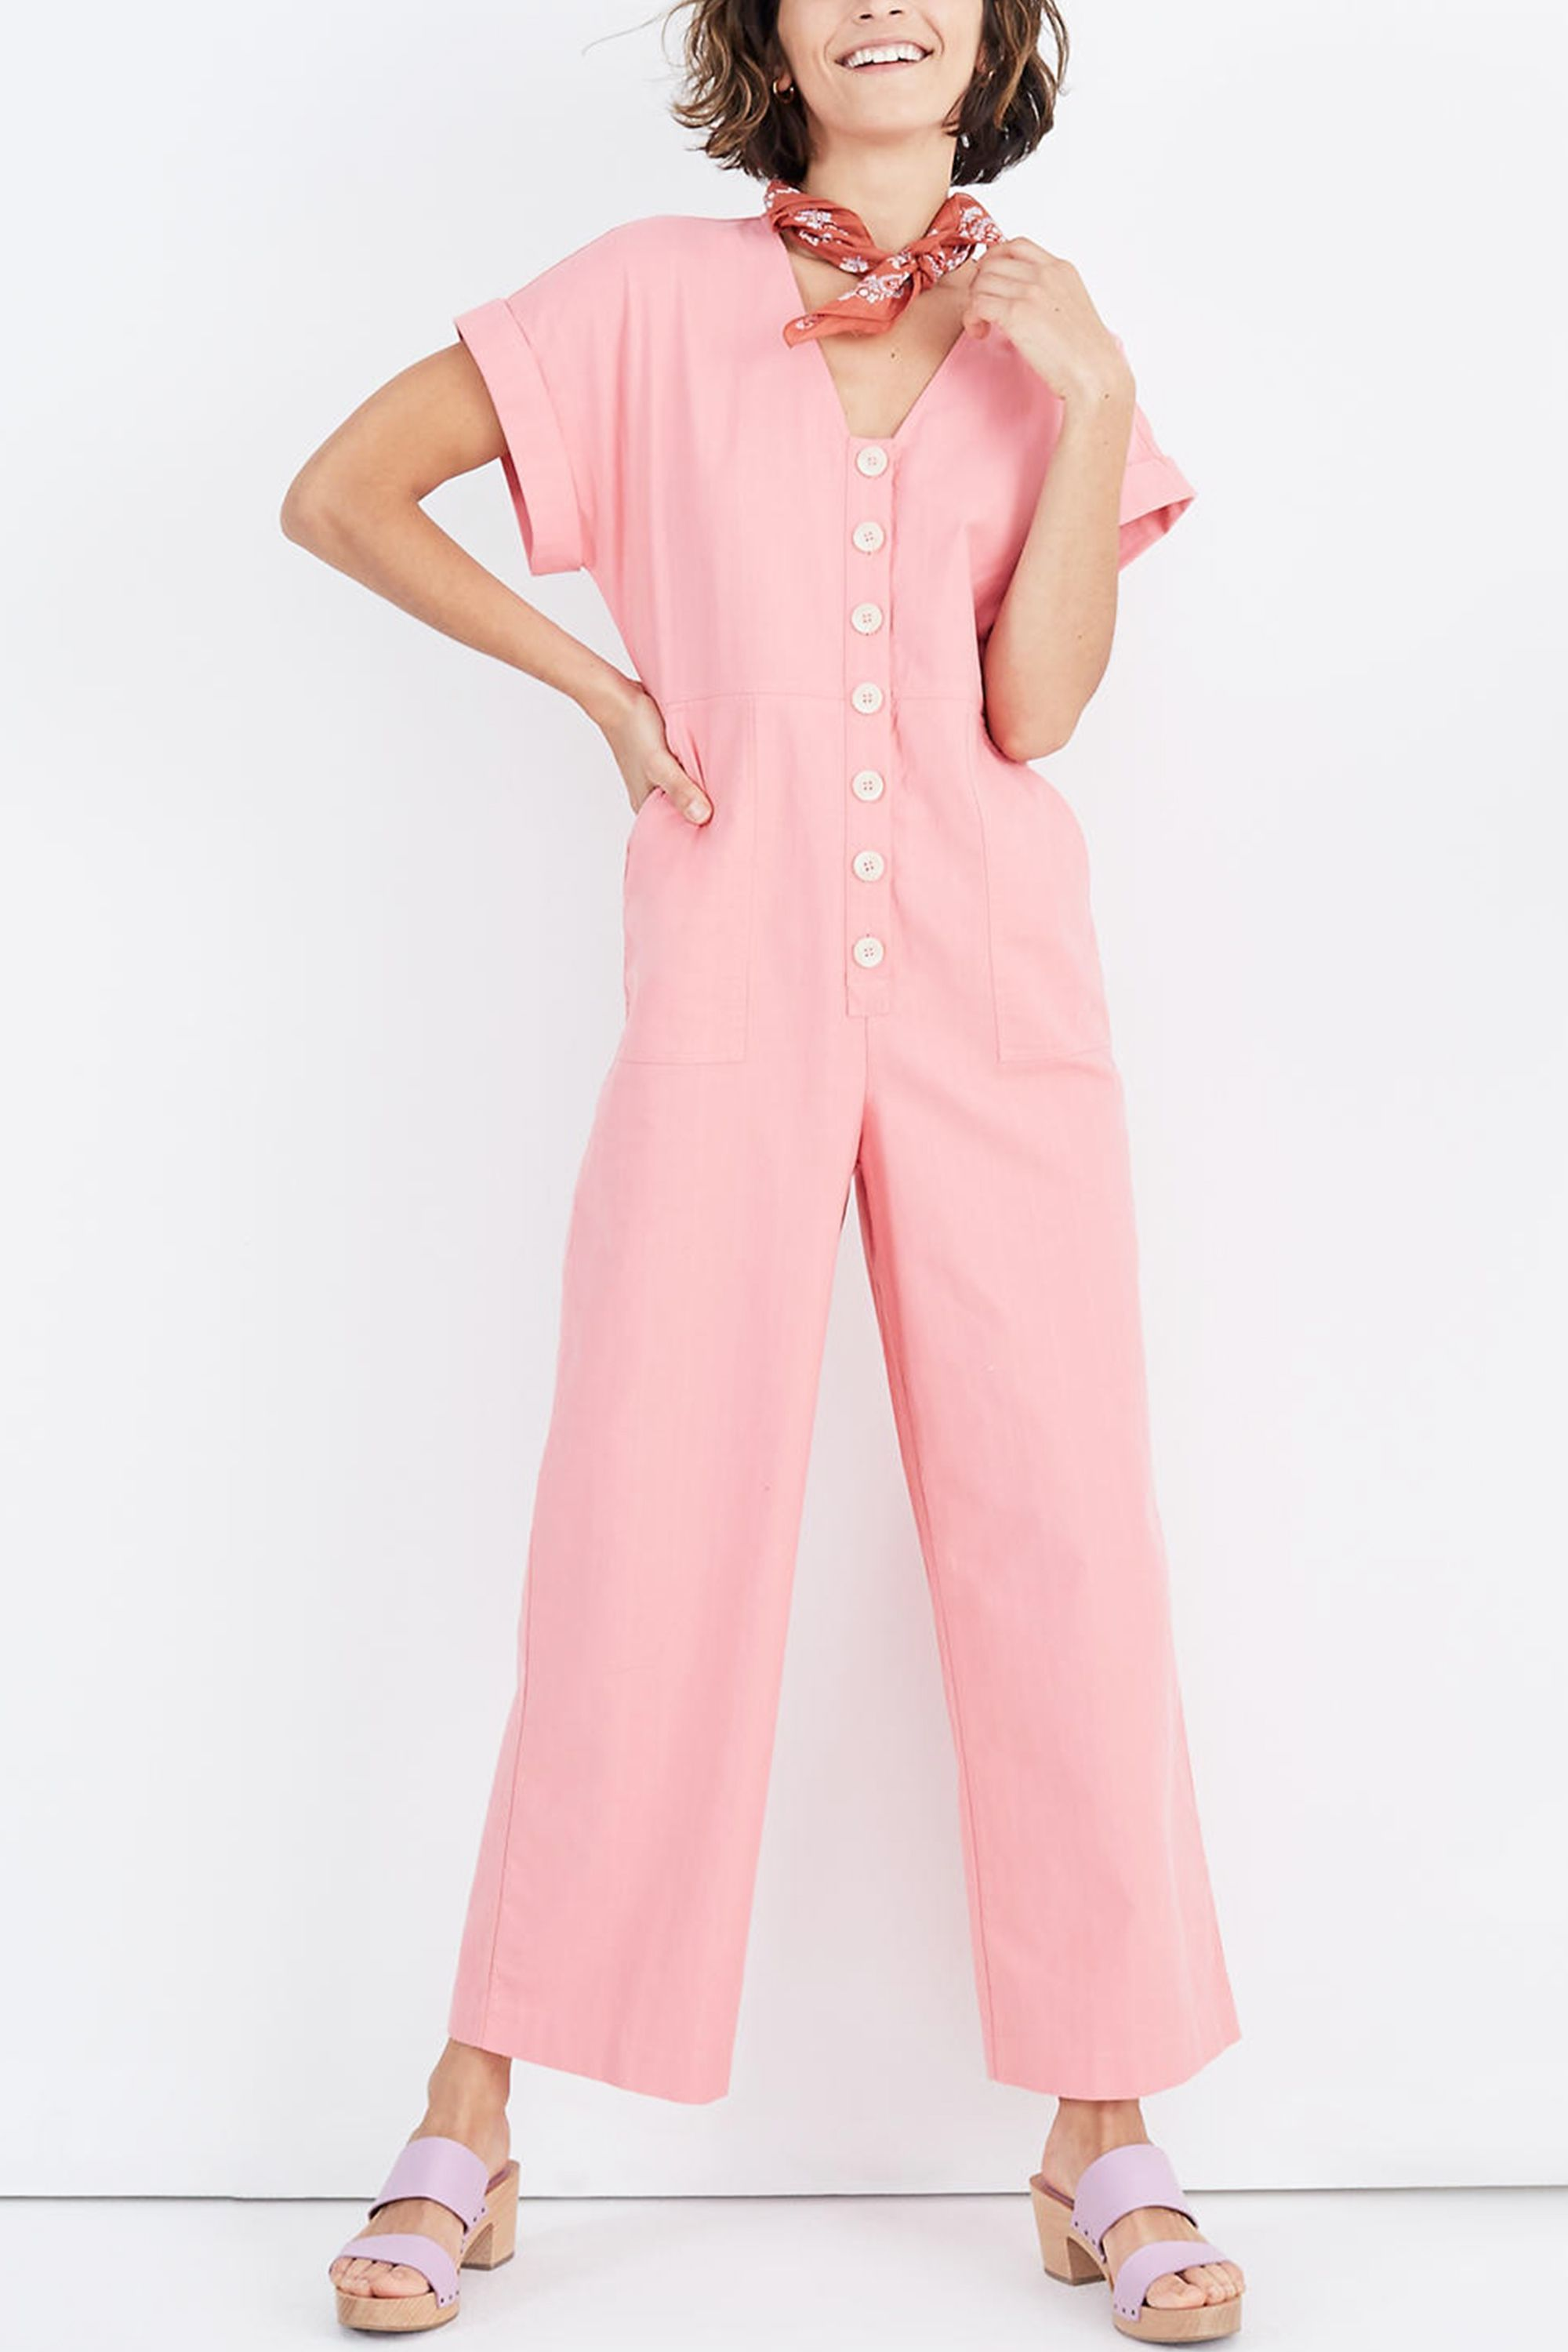 Button-Front Day Jumpsuit Madewell madewell.com $138.00 SHOP NOW We have yet to meet a jumpsuit we don't love, and this bubble-gum pink number is no exception. Style it with complimentary colors like lilac and raspberry for an outfit you'll rewear all summer long.